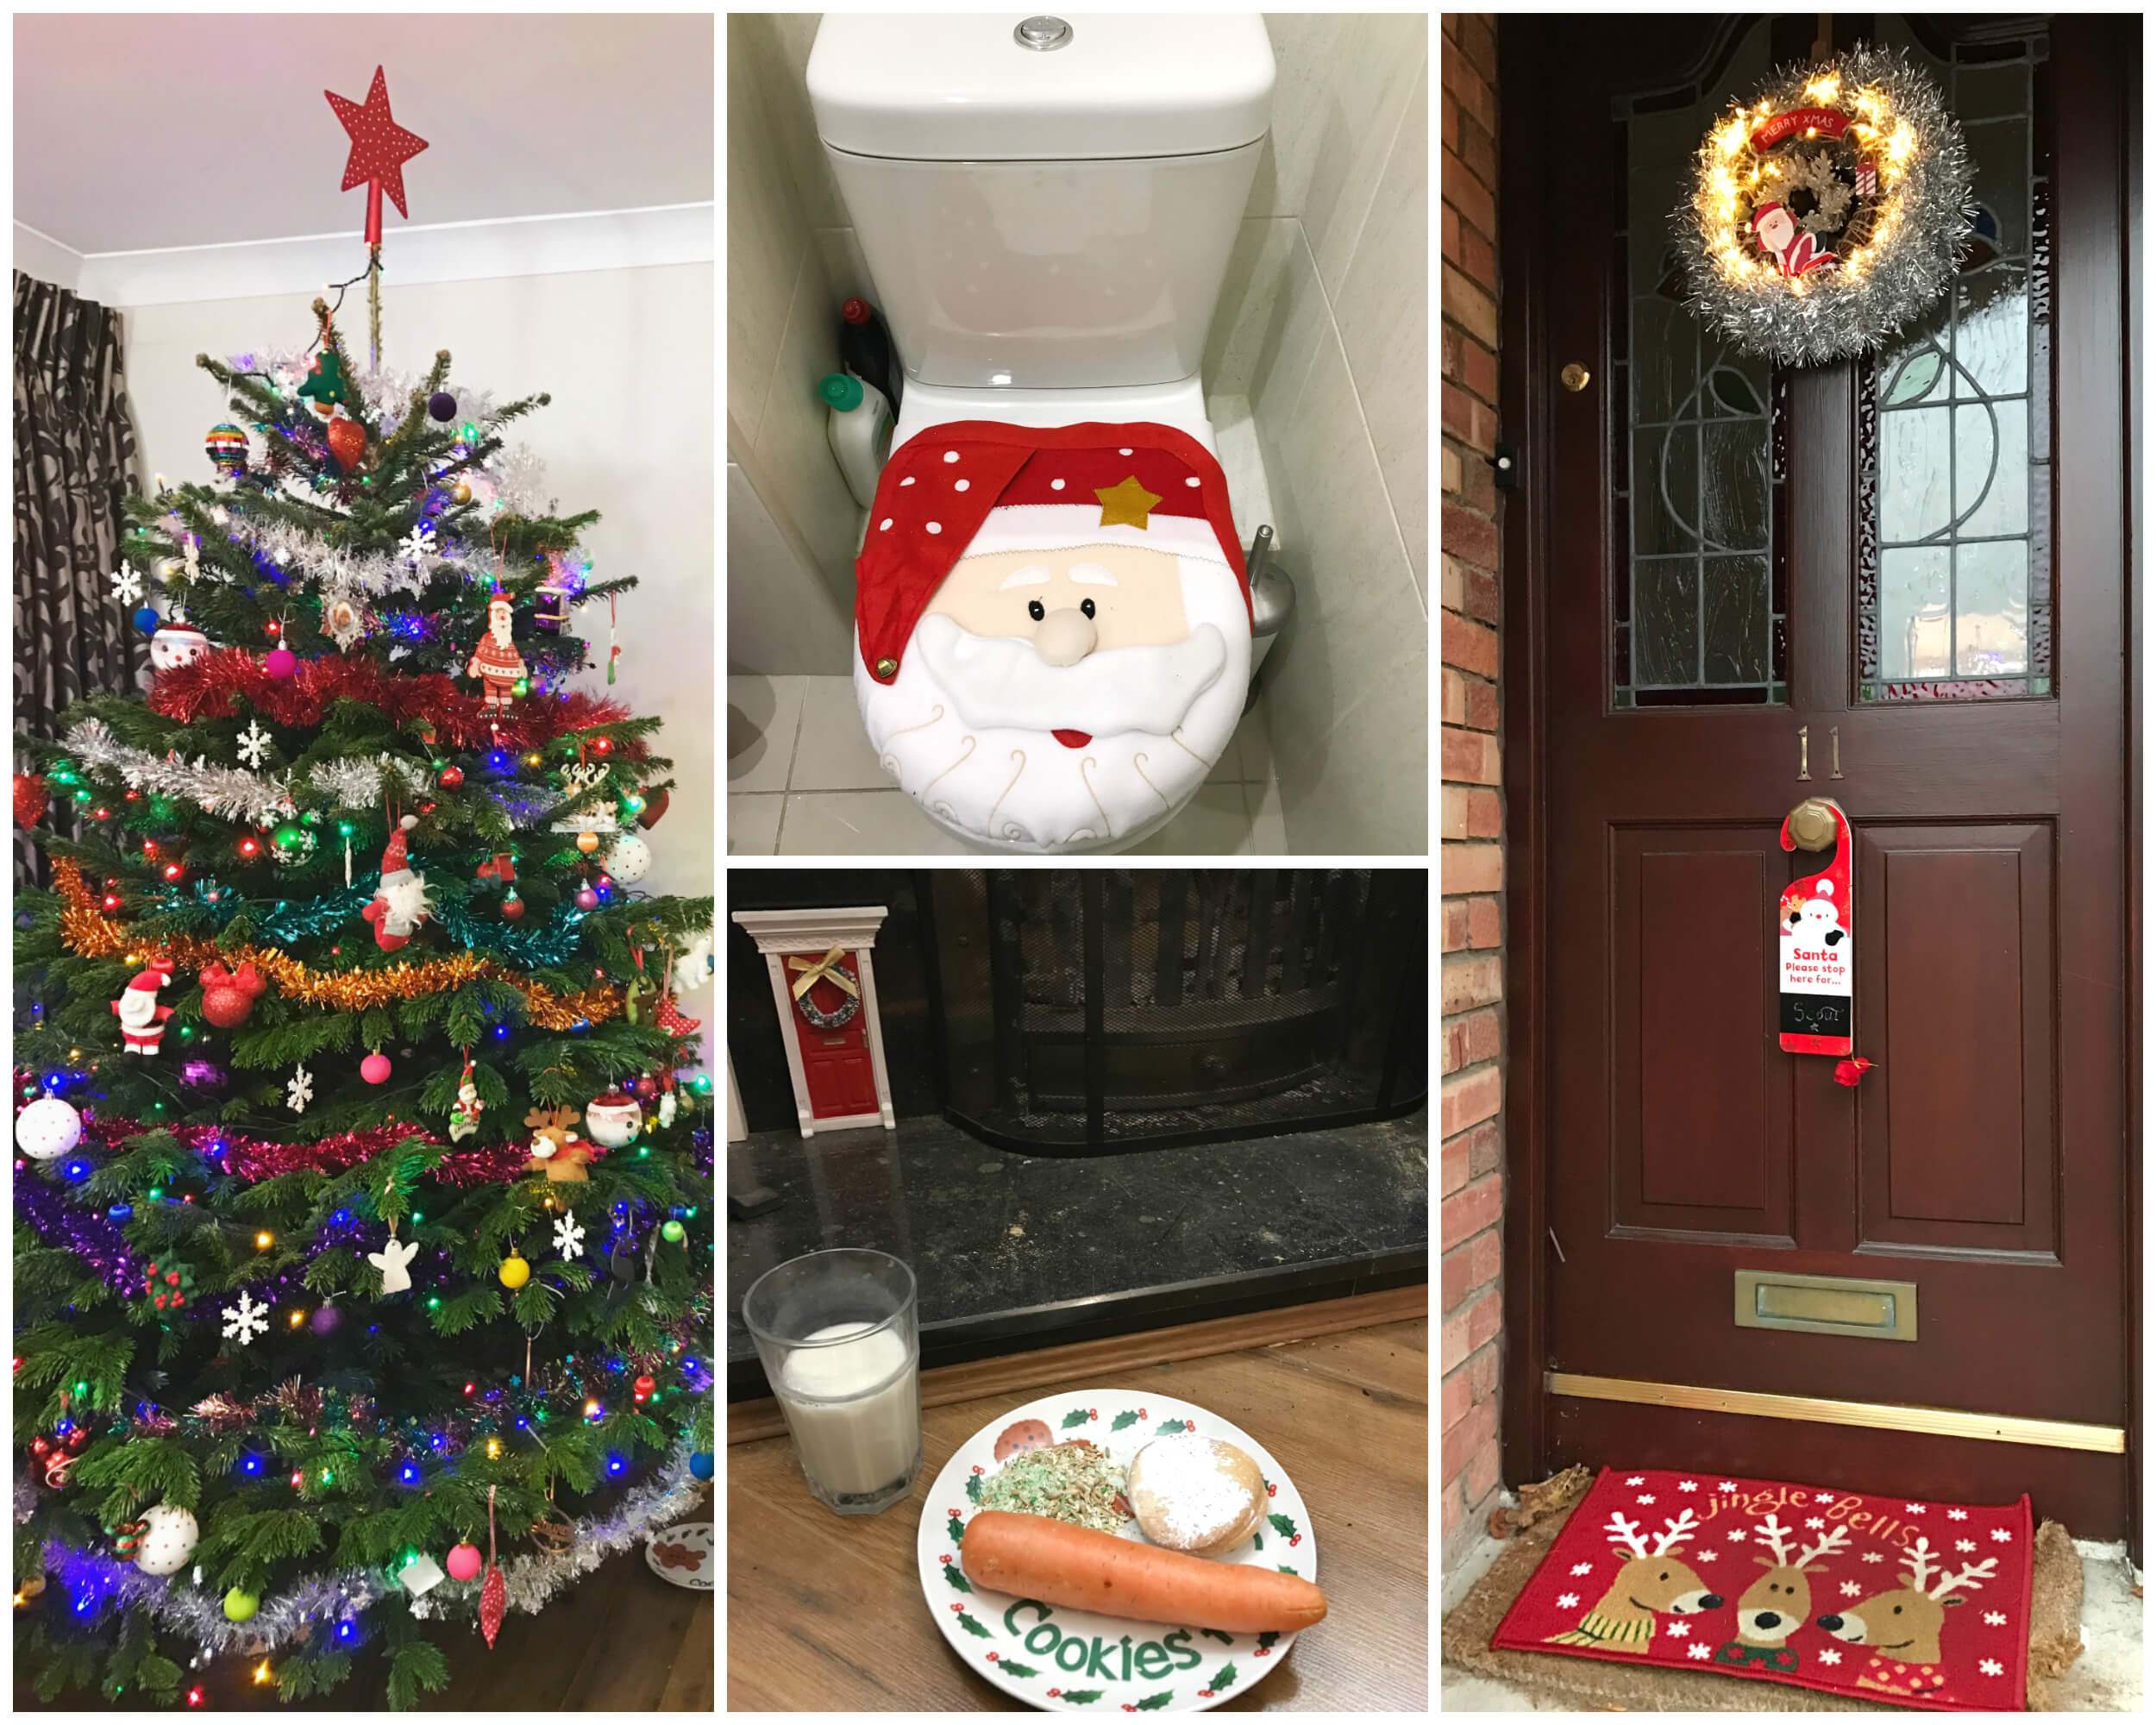 December 2016 Christmas decorations